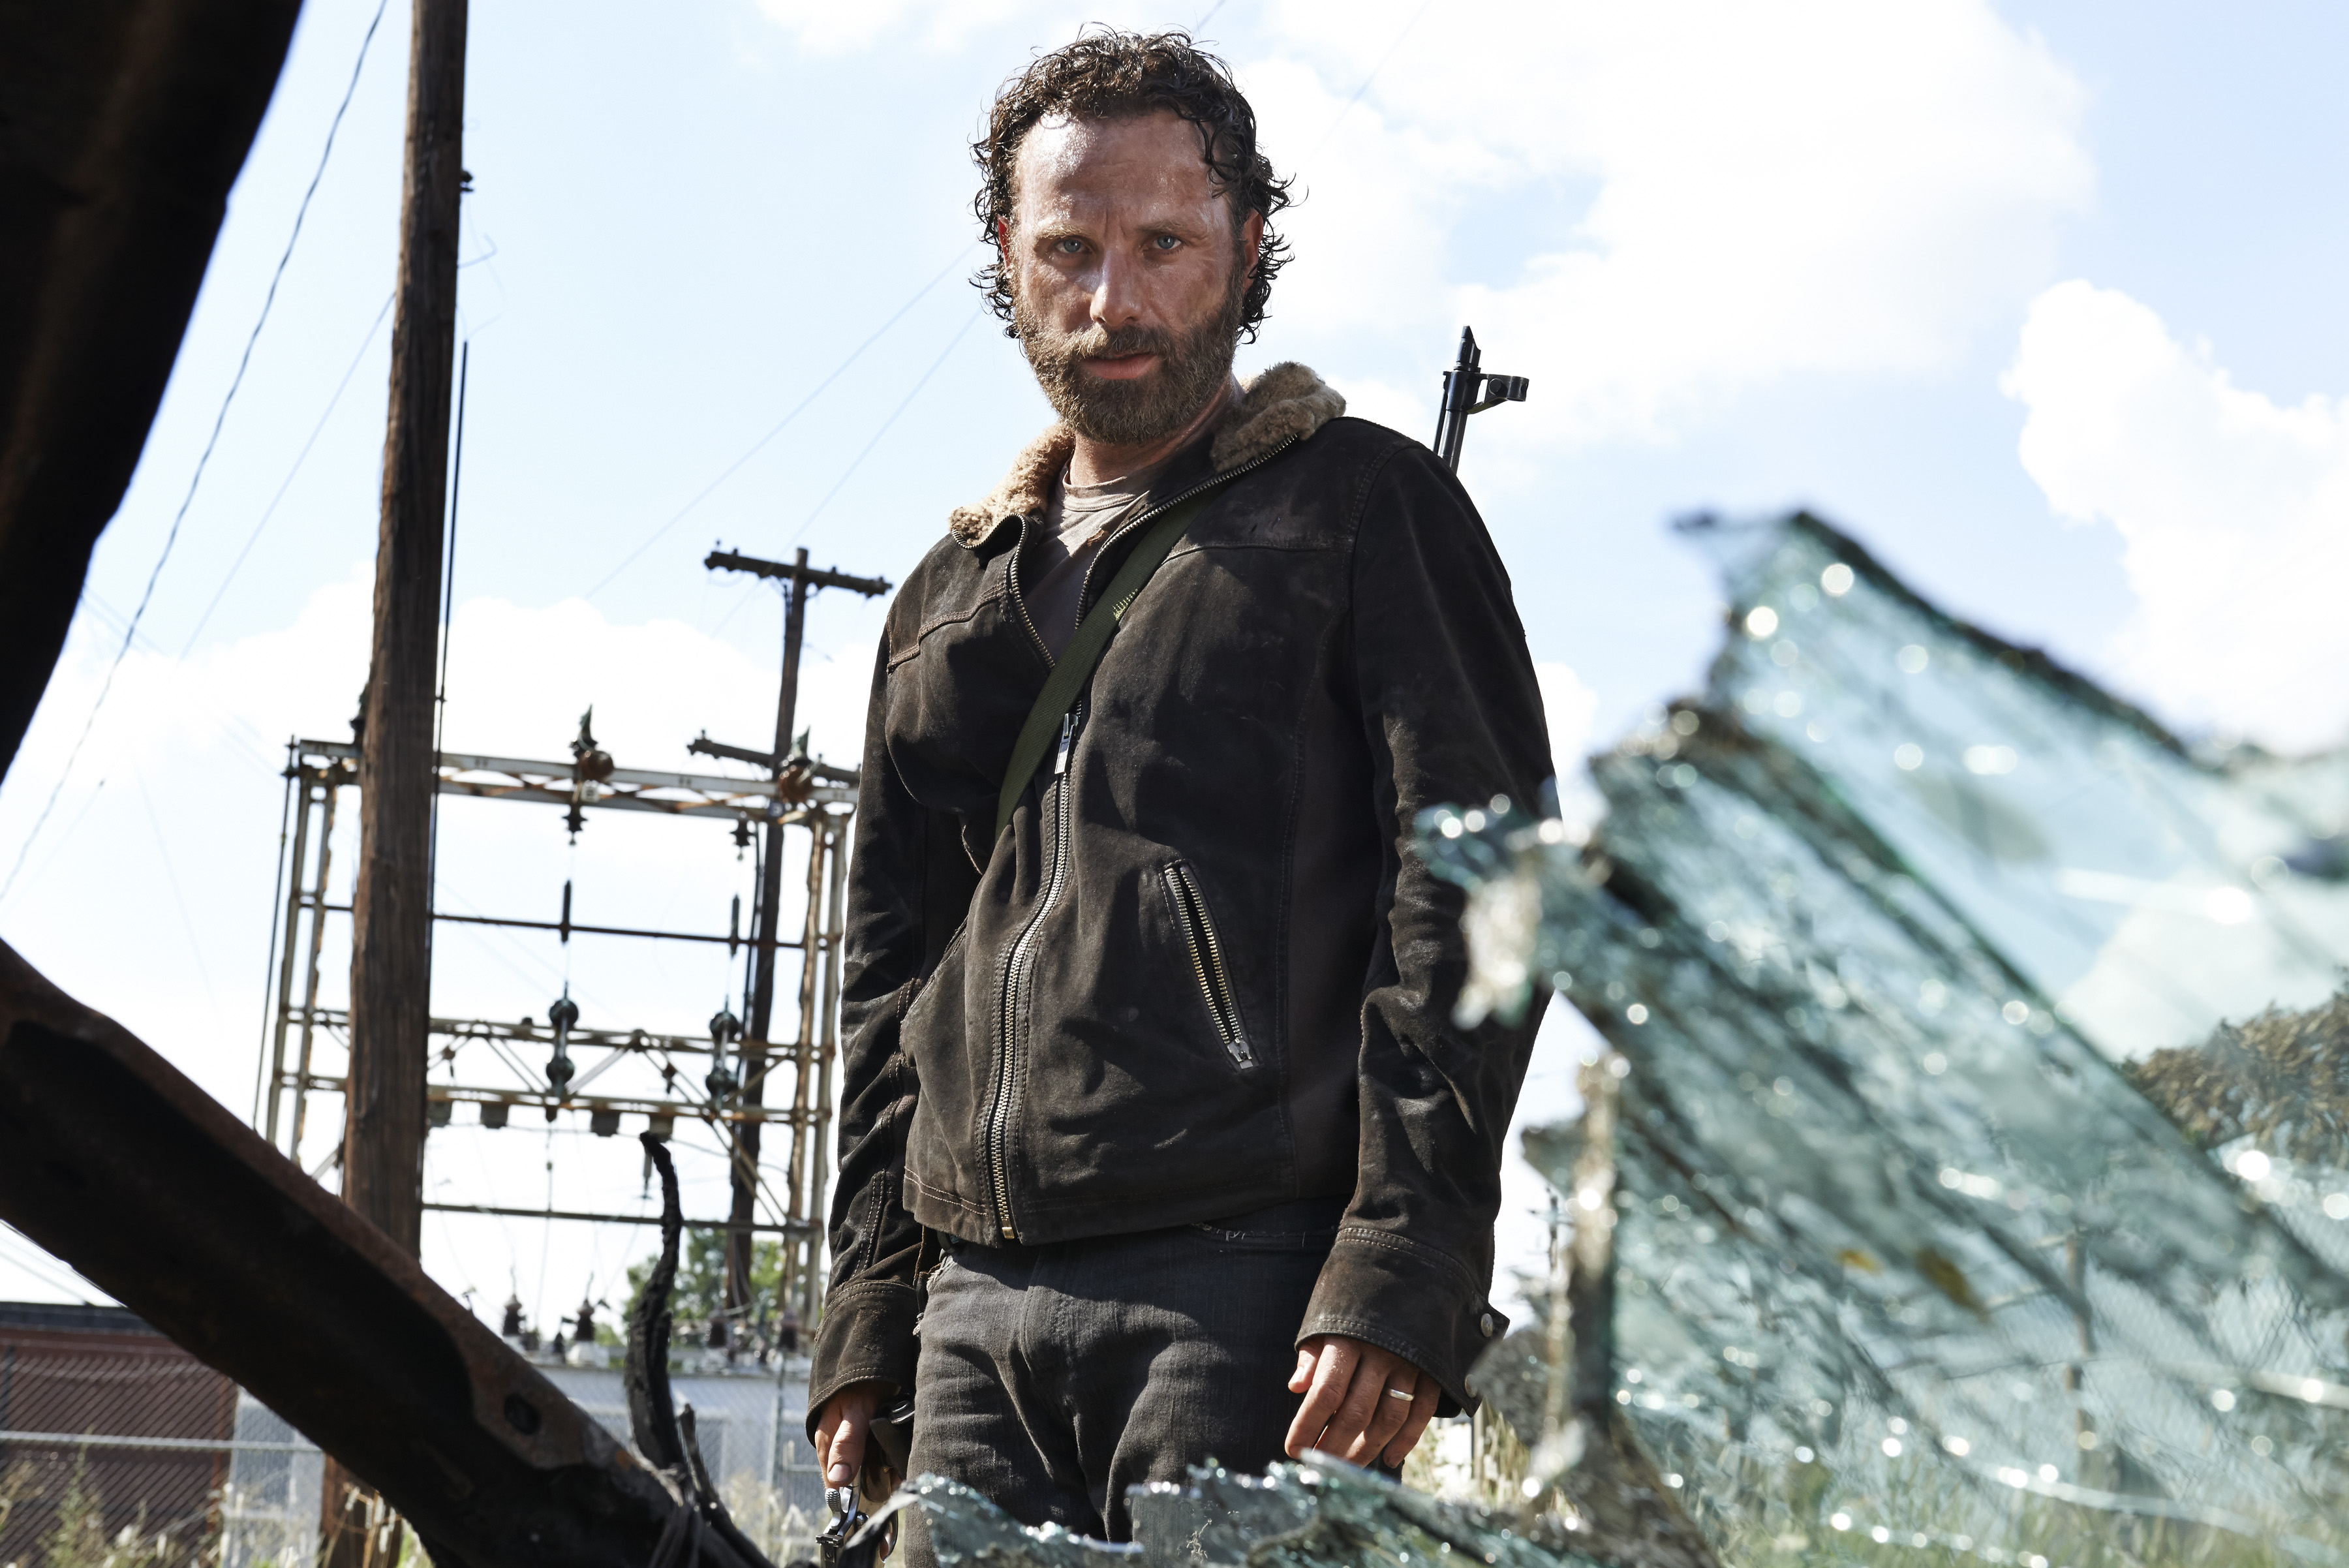 Andrew Lincoln as Rick Grimes in The Walking Dead, Season 5.